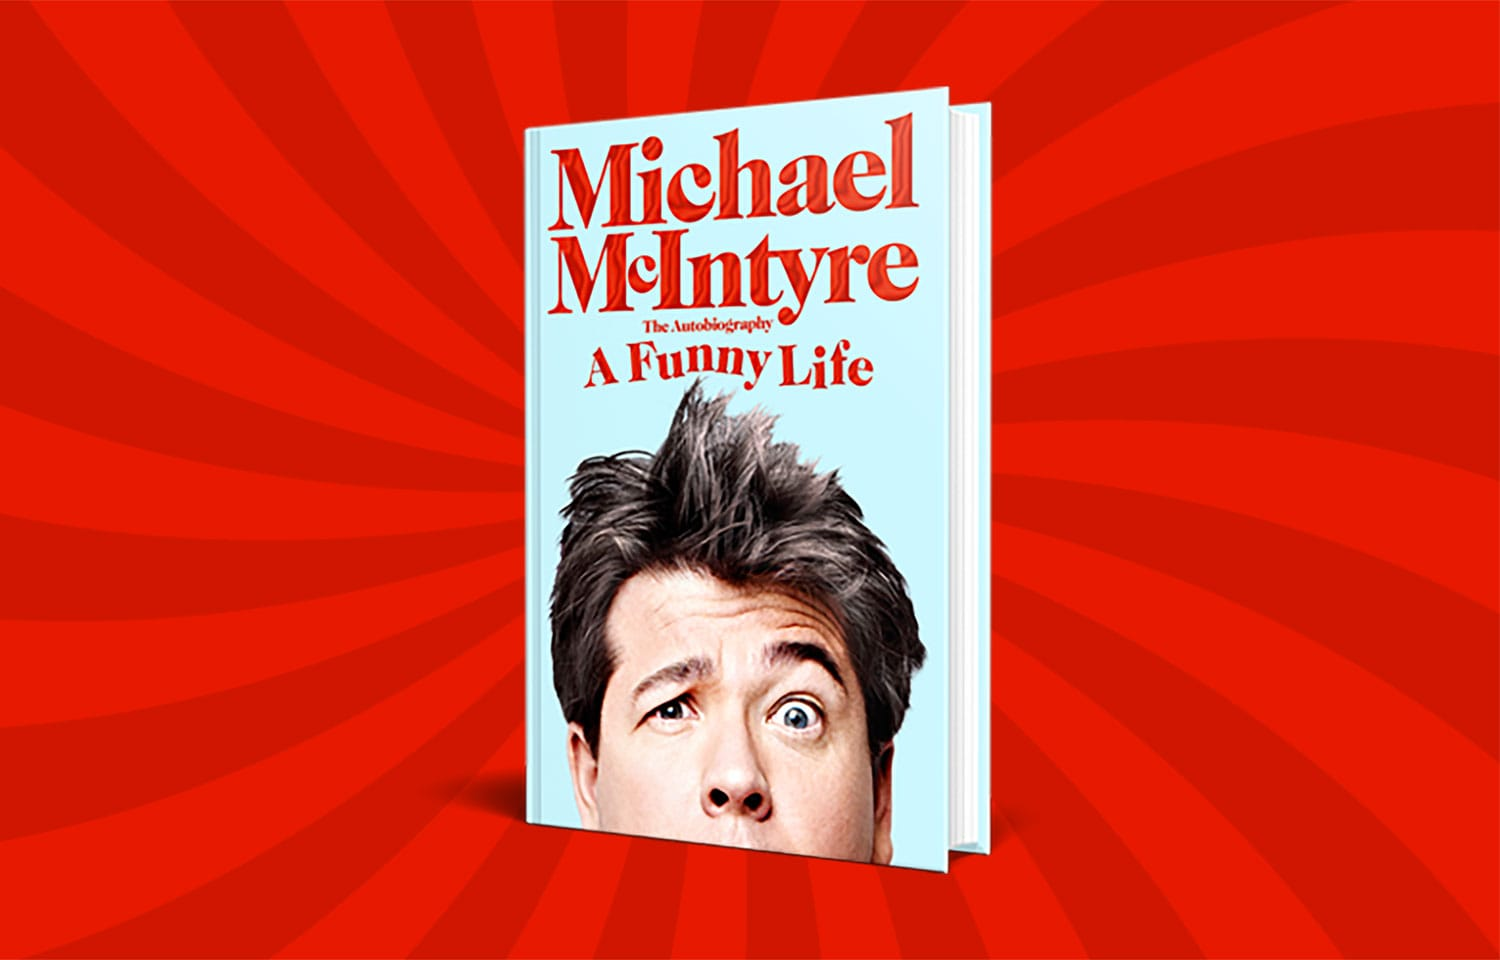 MICHAEL MCINTYRE'S BOOK A FUNNY LIFE TO BE RELEASED 14TH OCTOBER